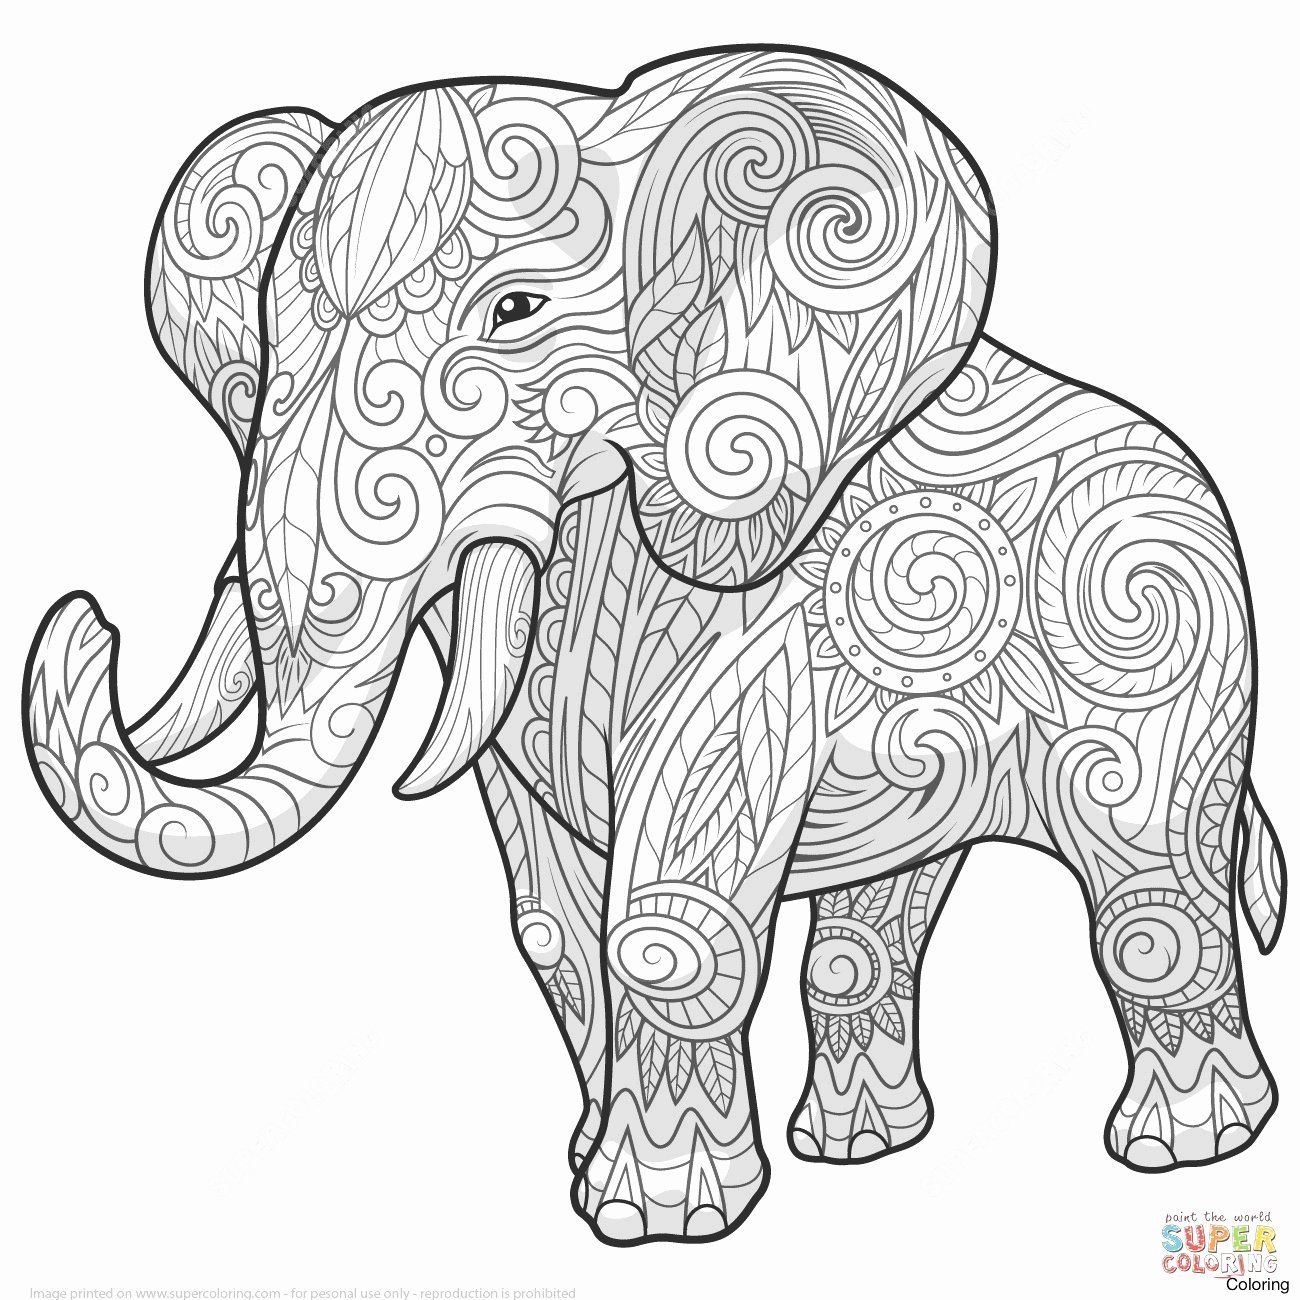 Asian Elephant Coloring Pages Best Of Elephant Mandala Coloring Pages Fresh Lovely Asian El Elephant Coloring Page Mandala Coloring Pages Animal Coloring Pages